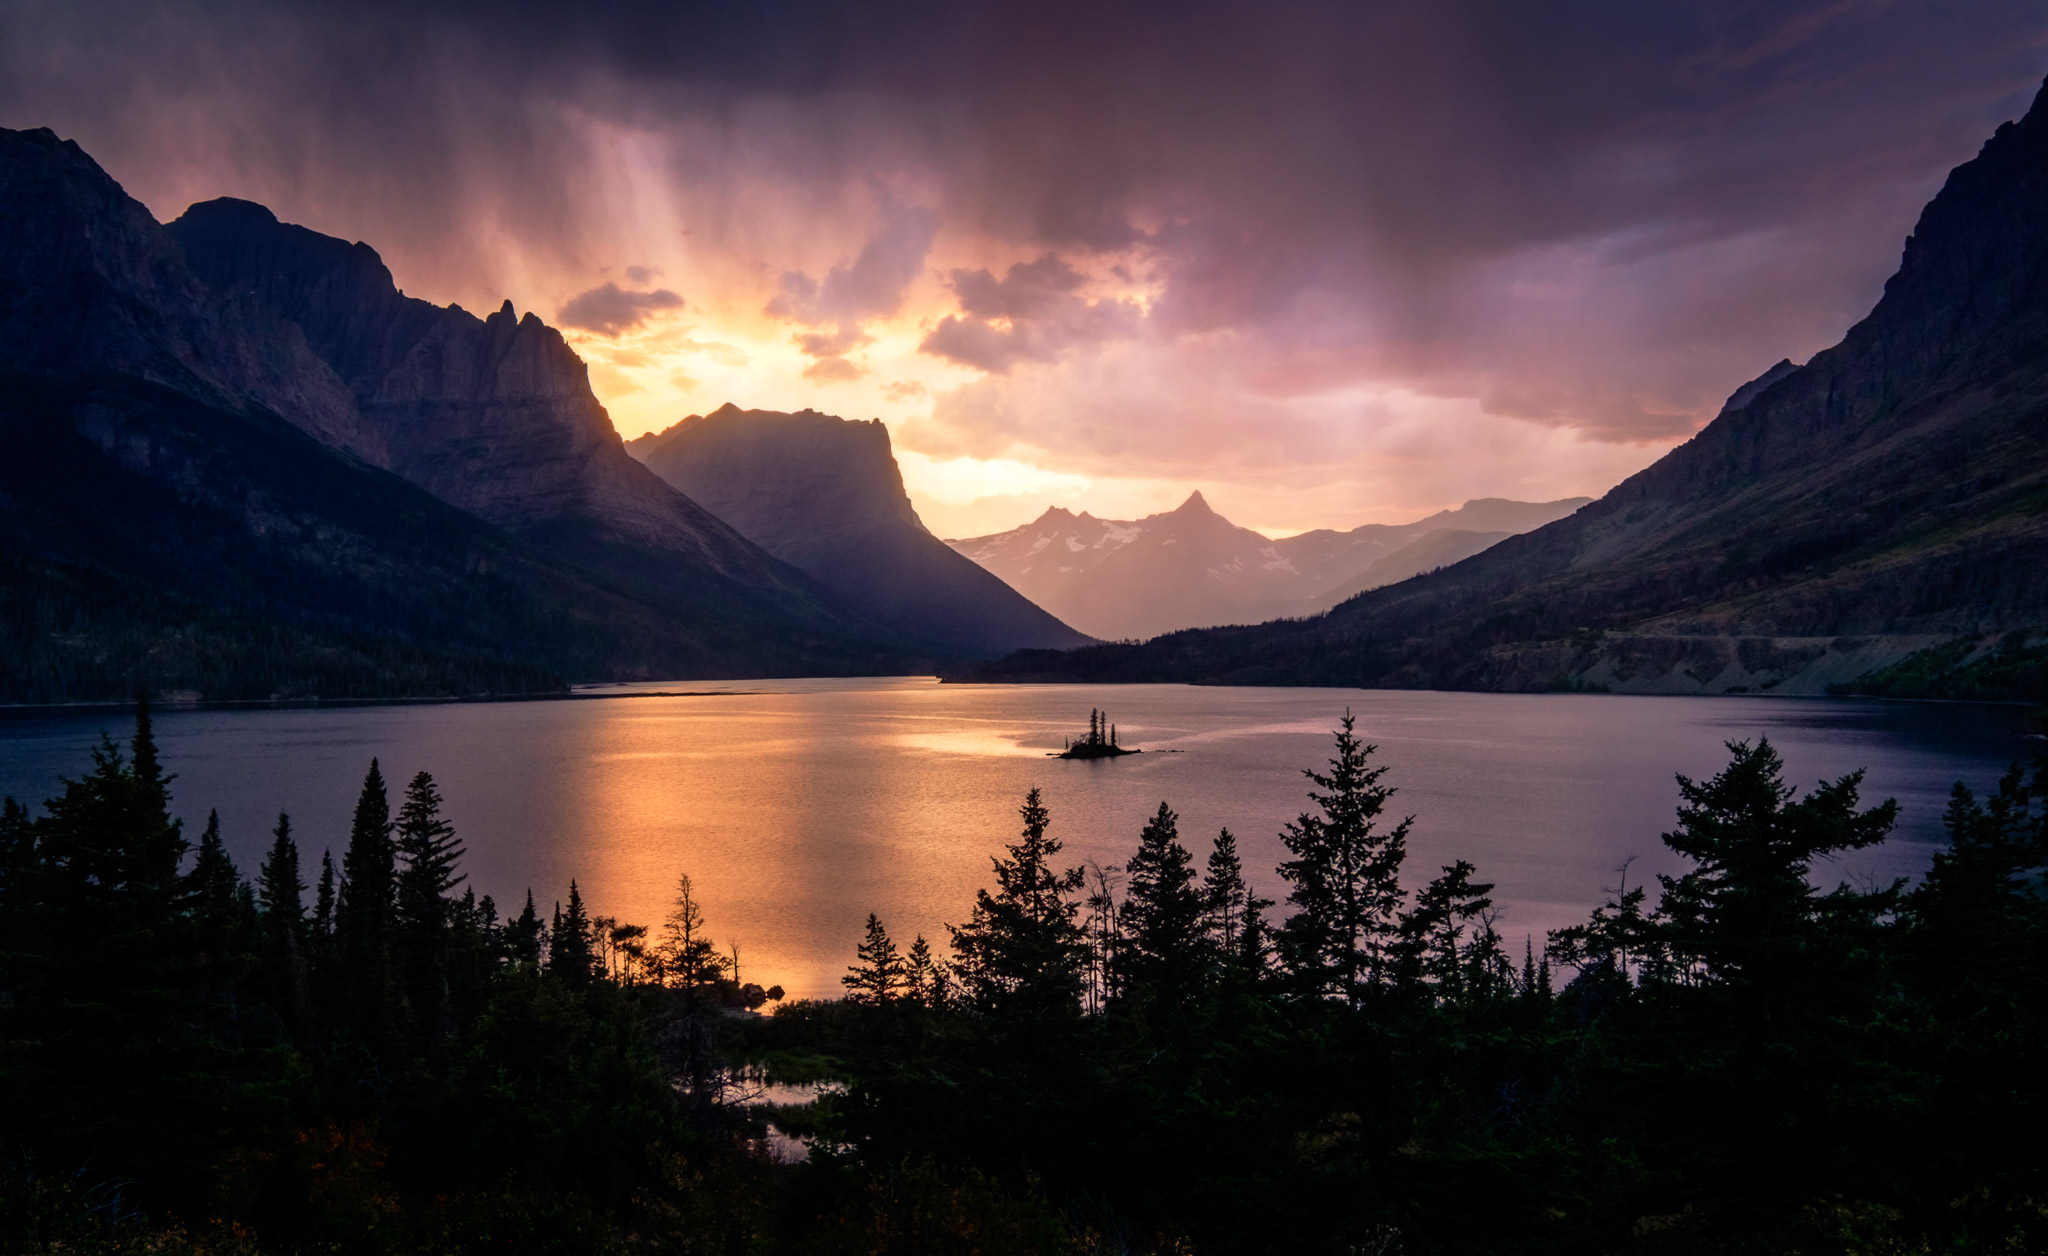 Wild Goose Island, St. Mary Lake during a storm at sunset